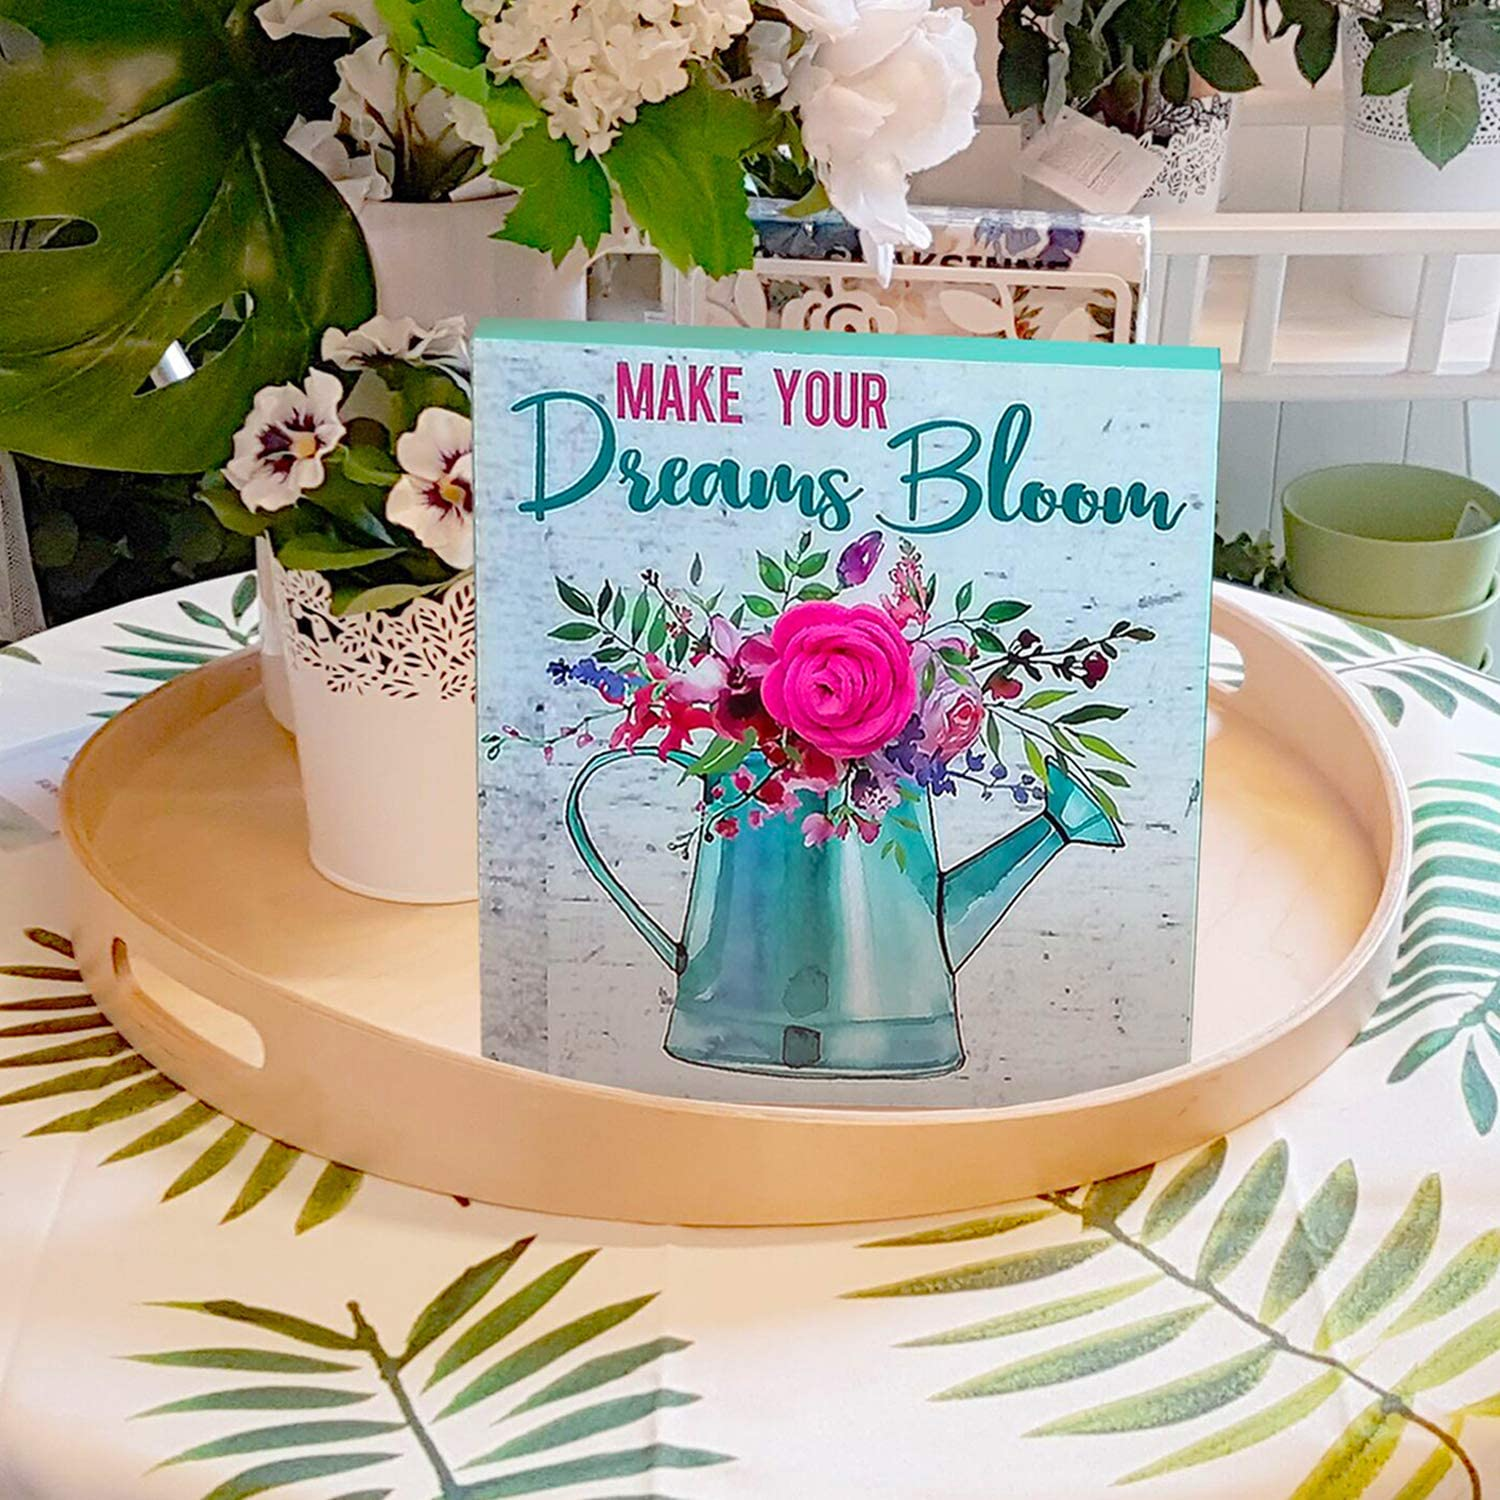 Spring Wood Block Plaque Box for Table shelf decoration,8 inch Rustic Wooden Tabletop Plank board Sign for Farmhouse coffeehouse Living Room,Make your Dreams Bloom (Green D)